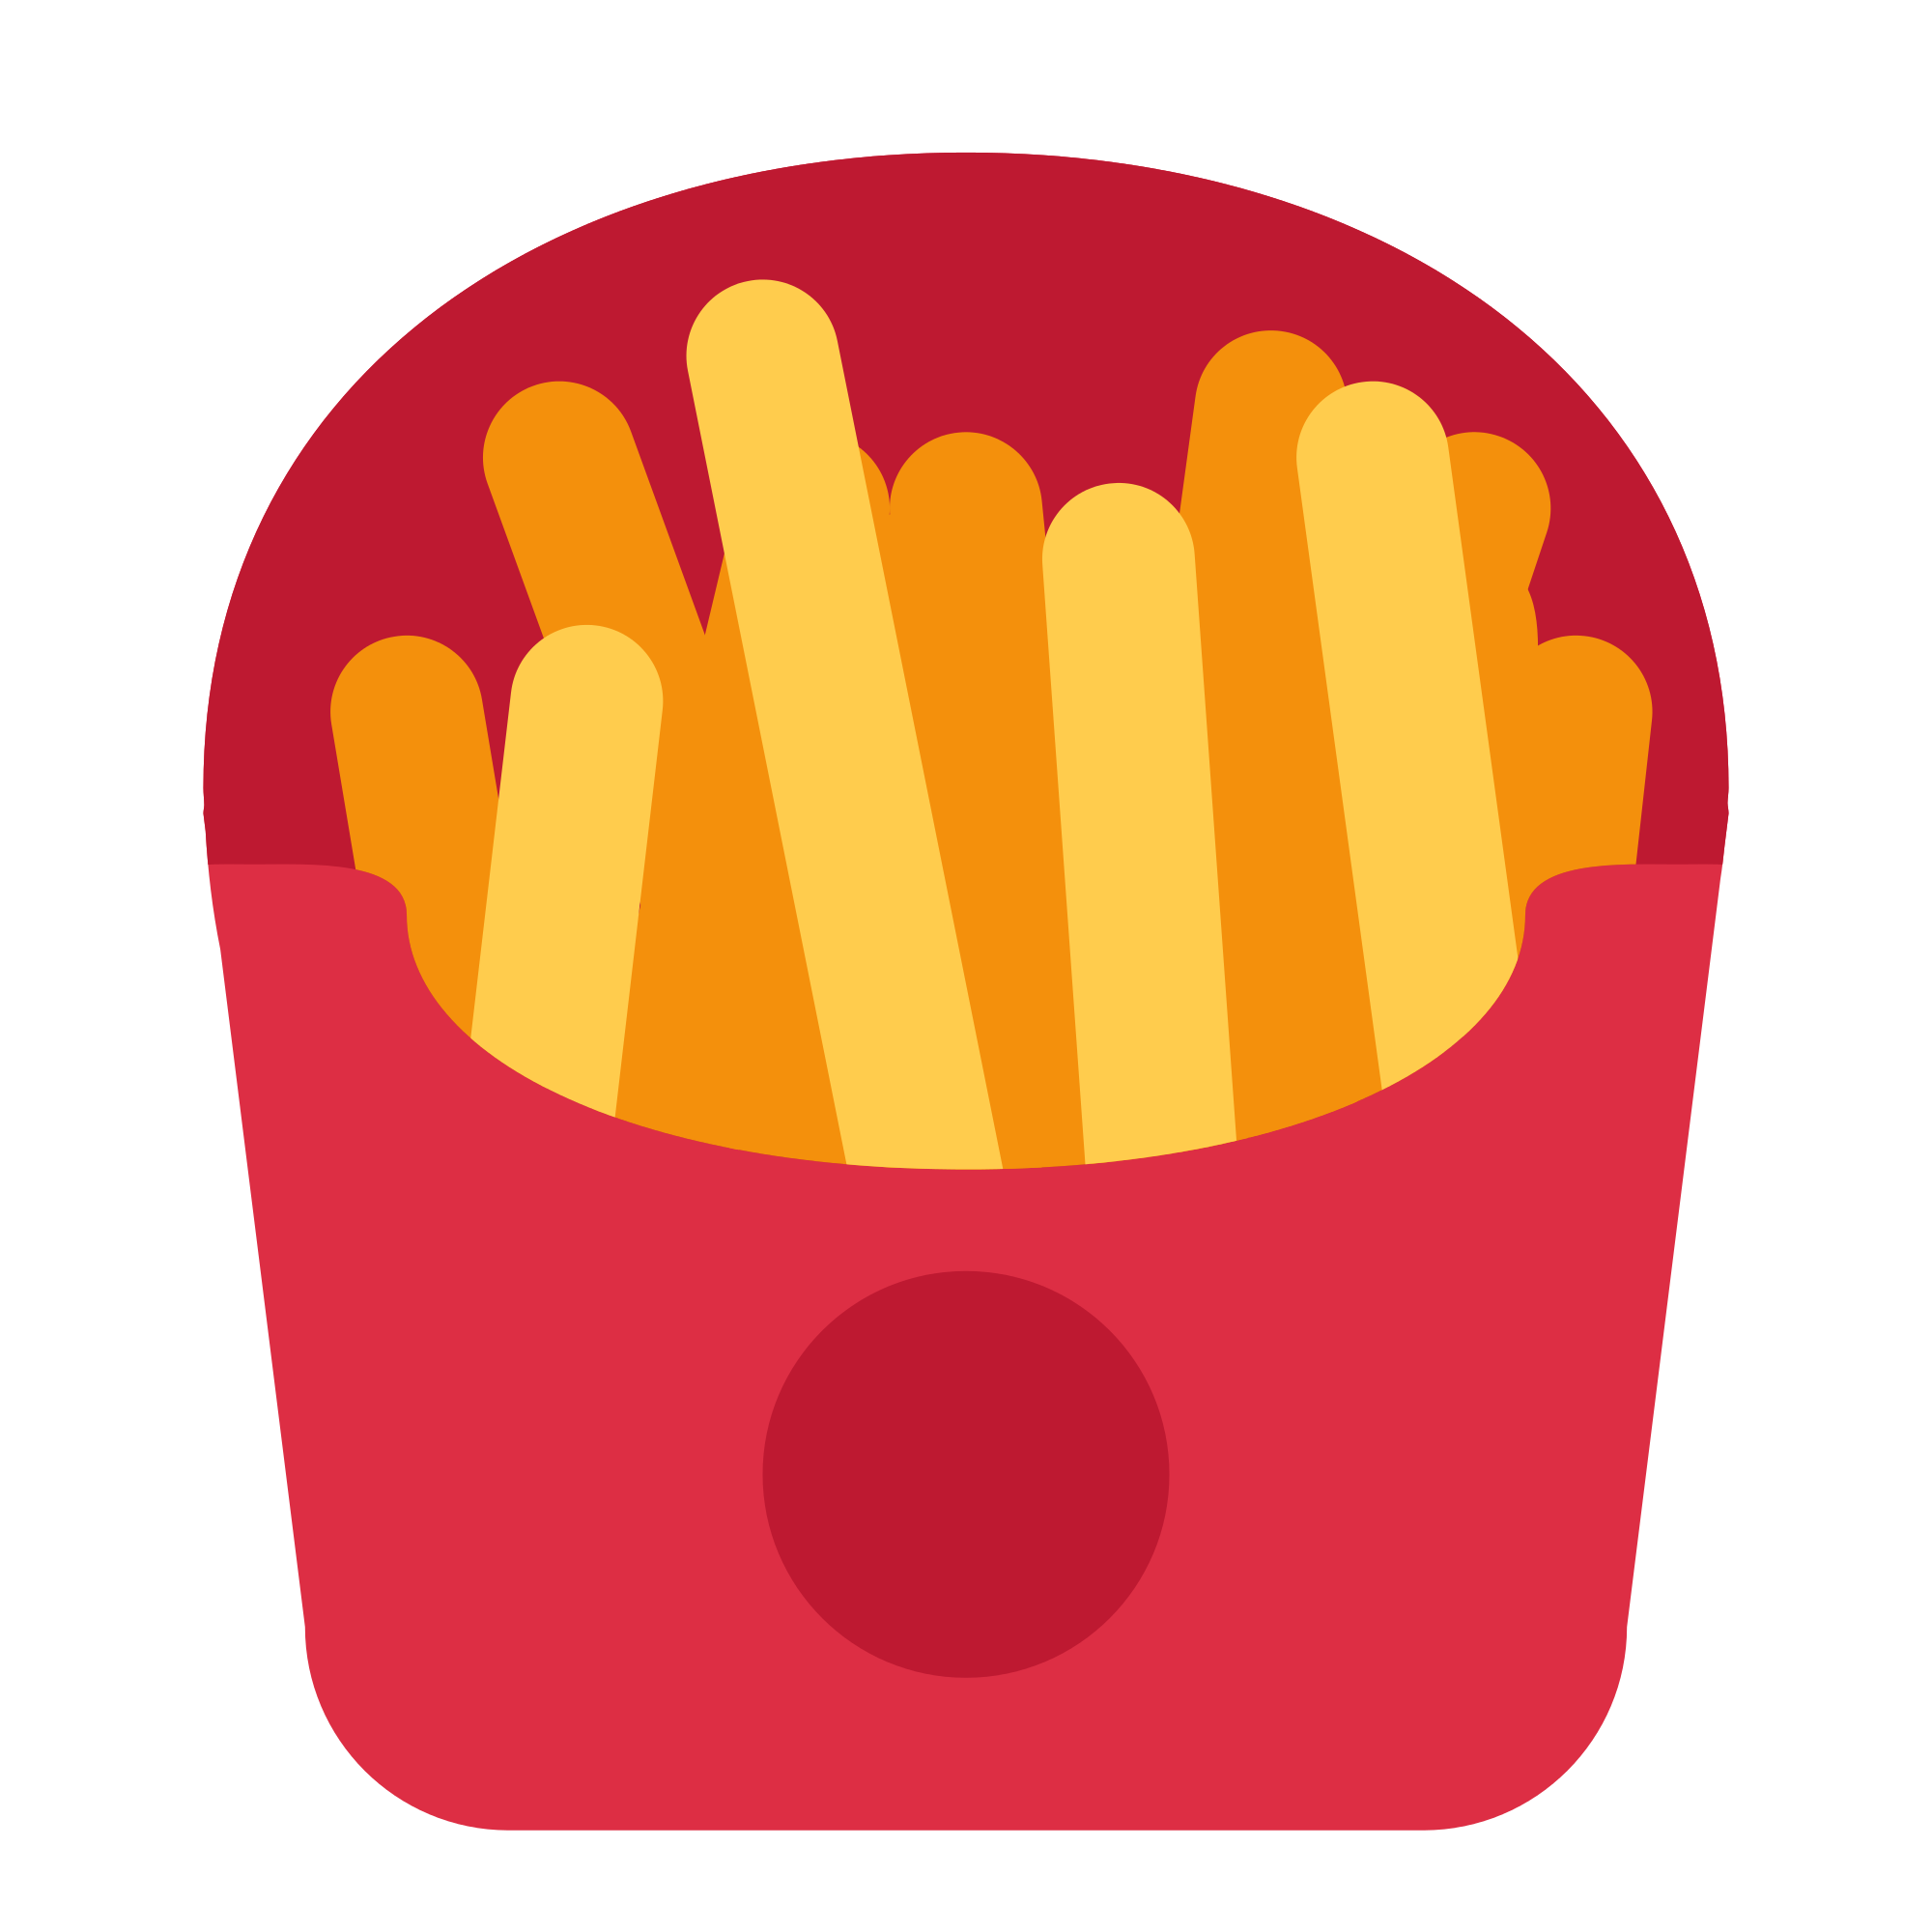 Fries clipart appetizer, Fries appetizer Transparent FREE.